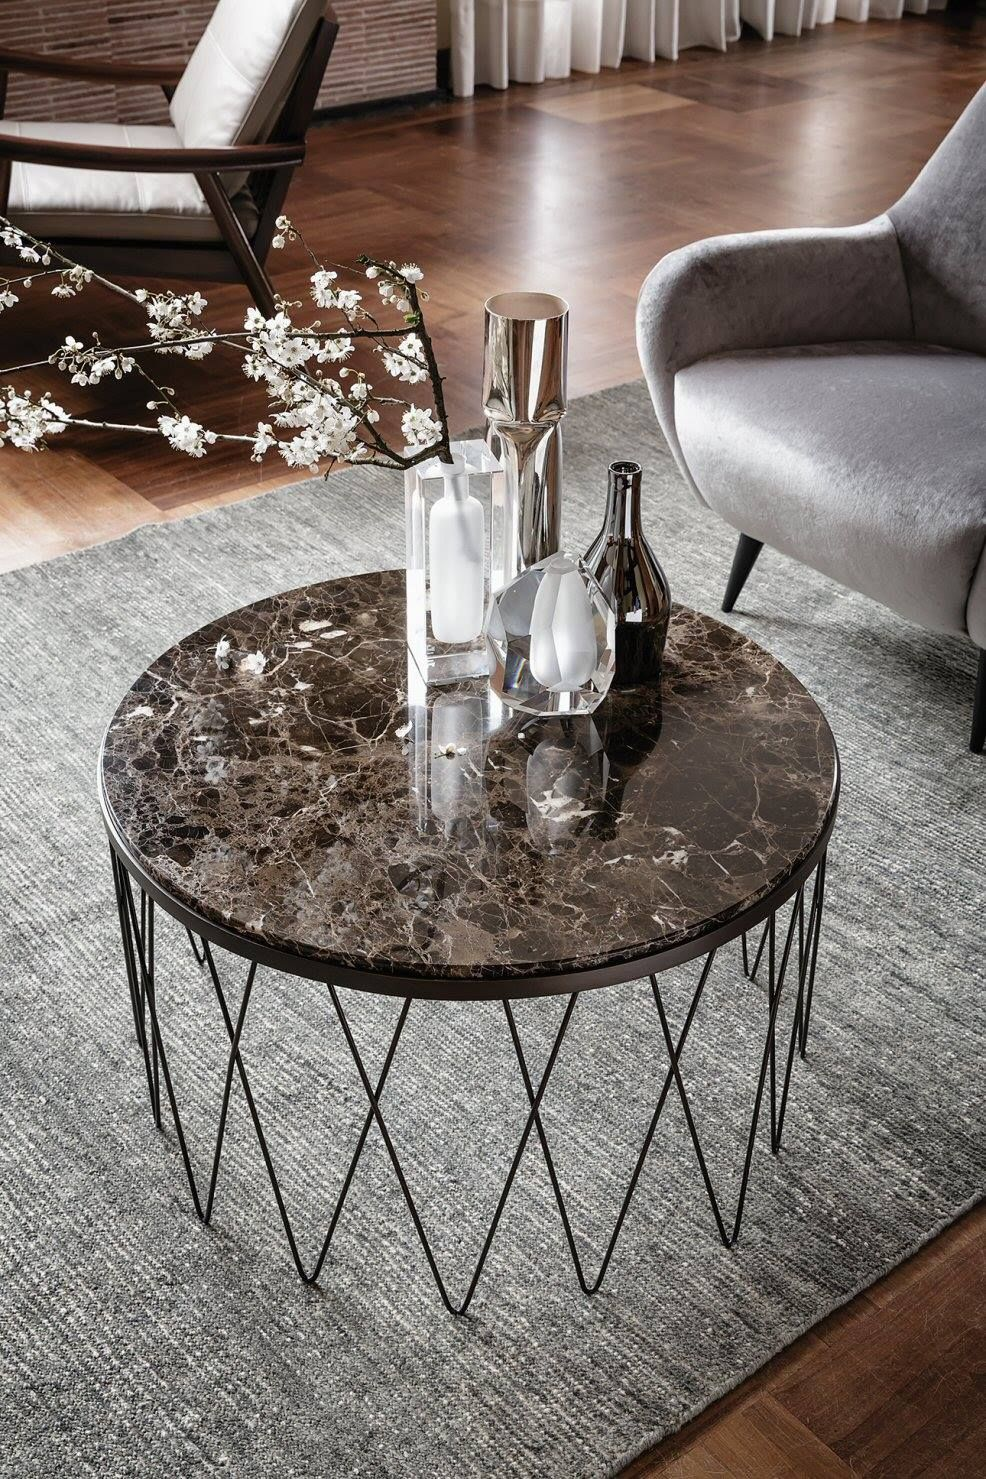 Pin By Crystal On Materials And Details Living Room Table Marble Furniture Center Table Living Room [ jpg ]